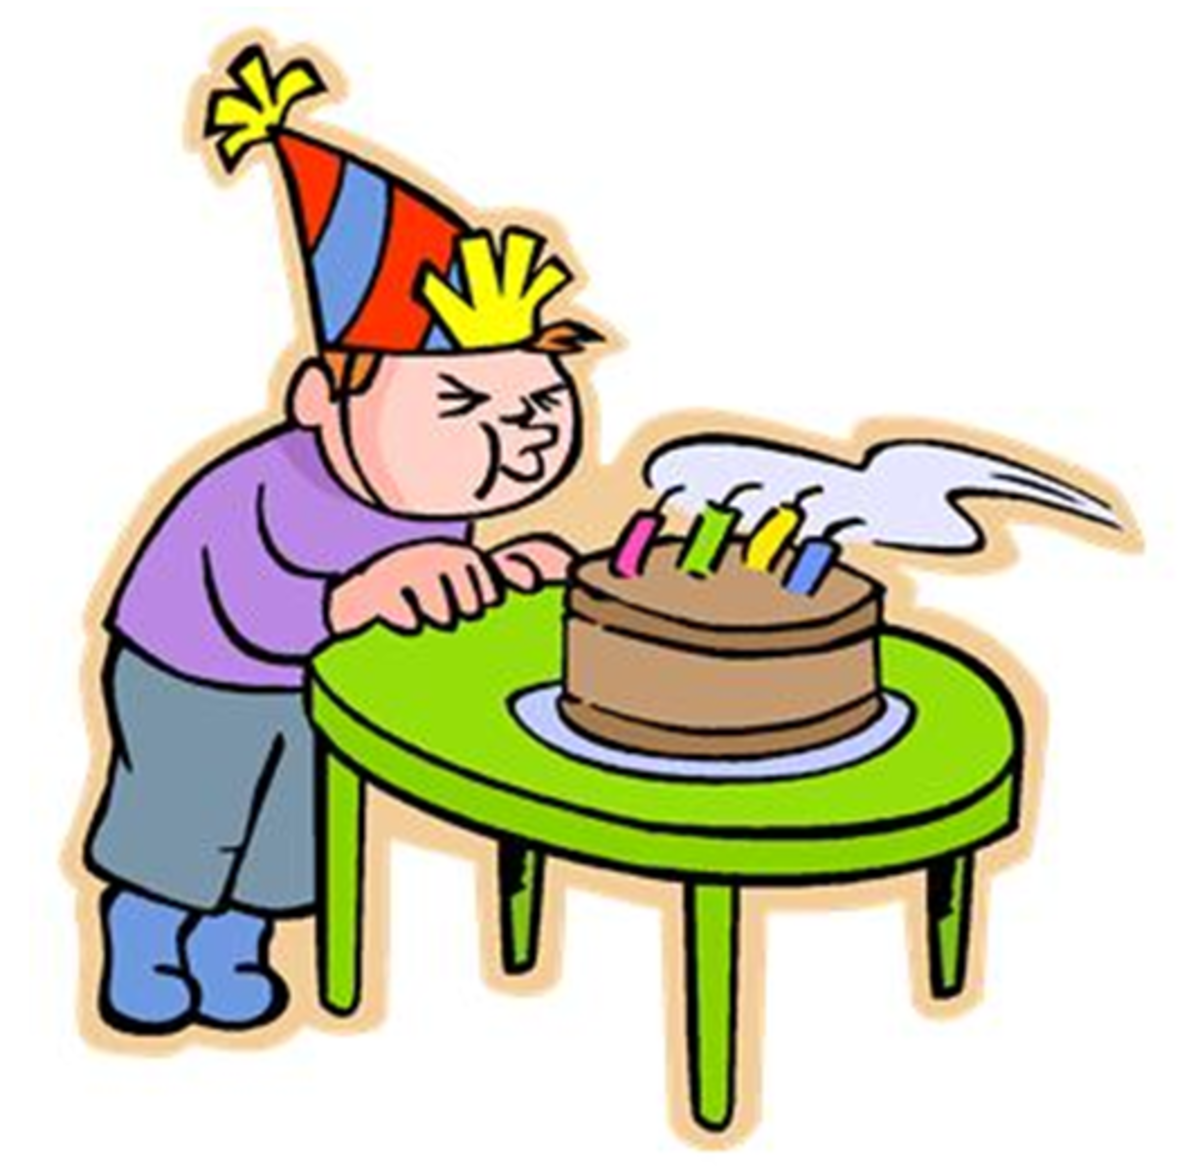 Boy in Party Hat Blowing out Birthday Candles on Cake